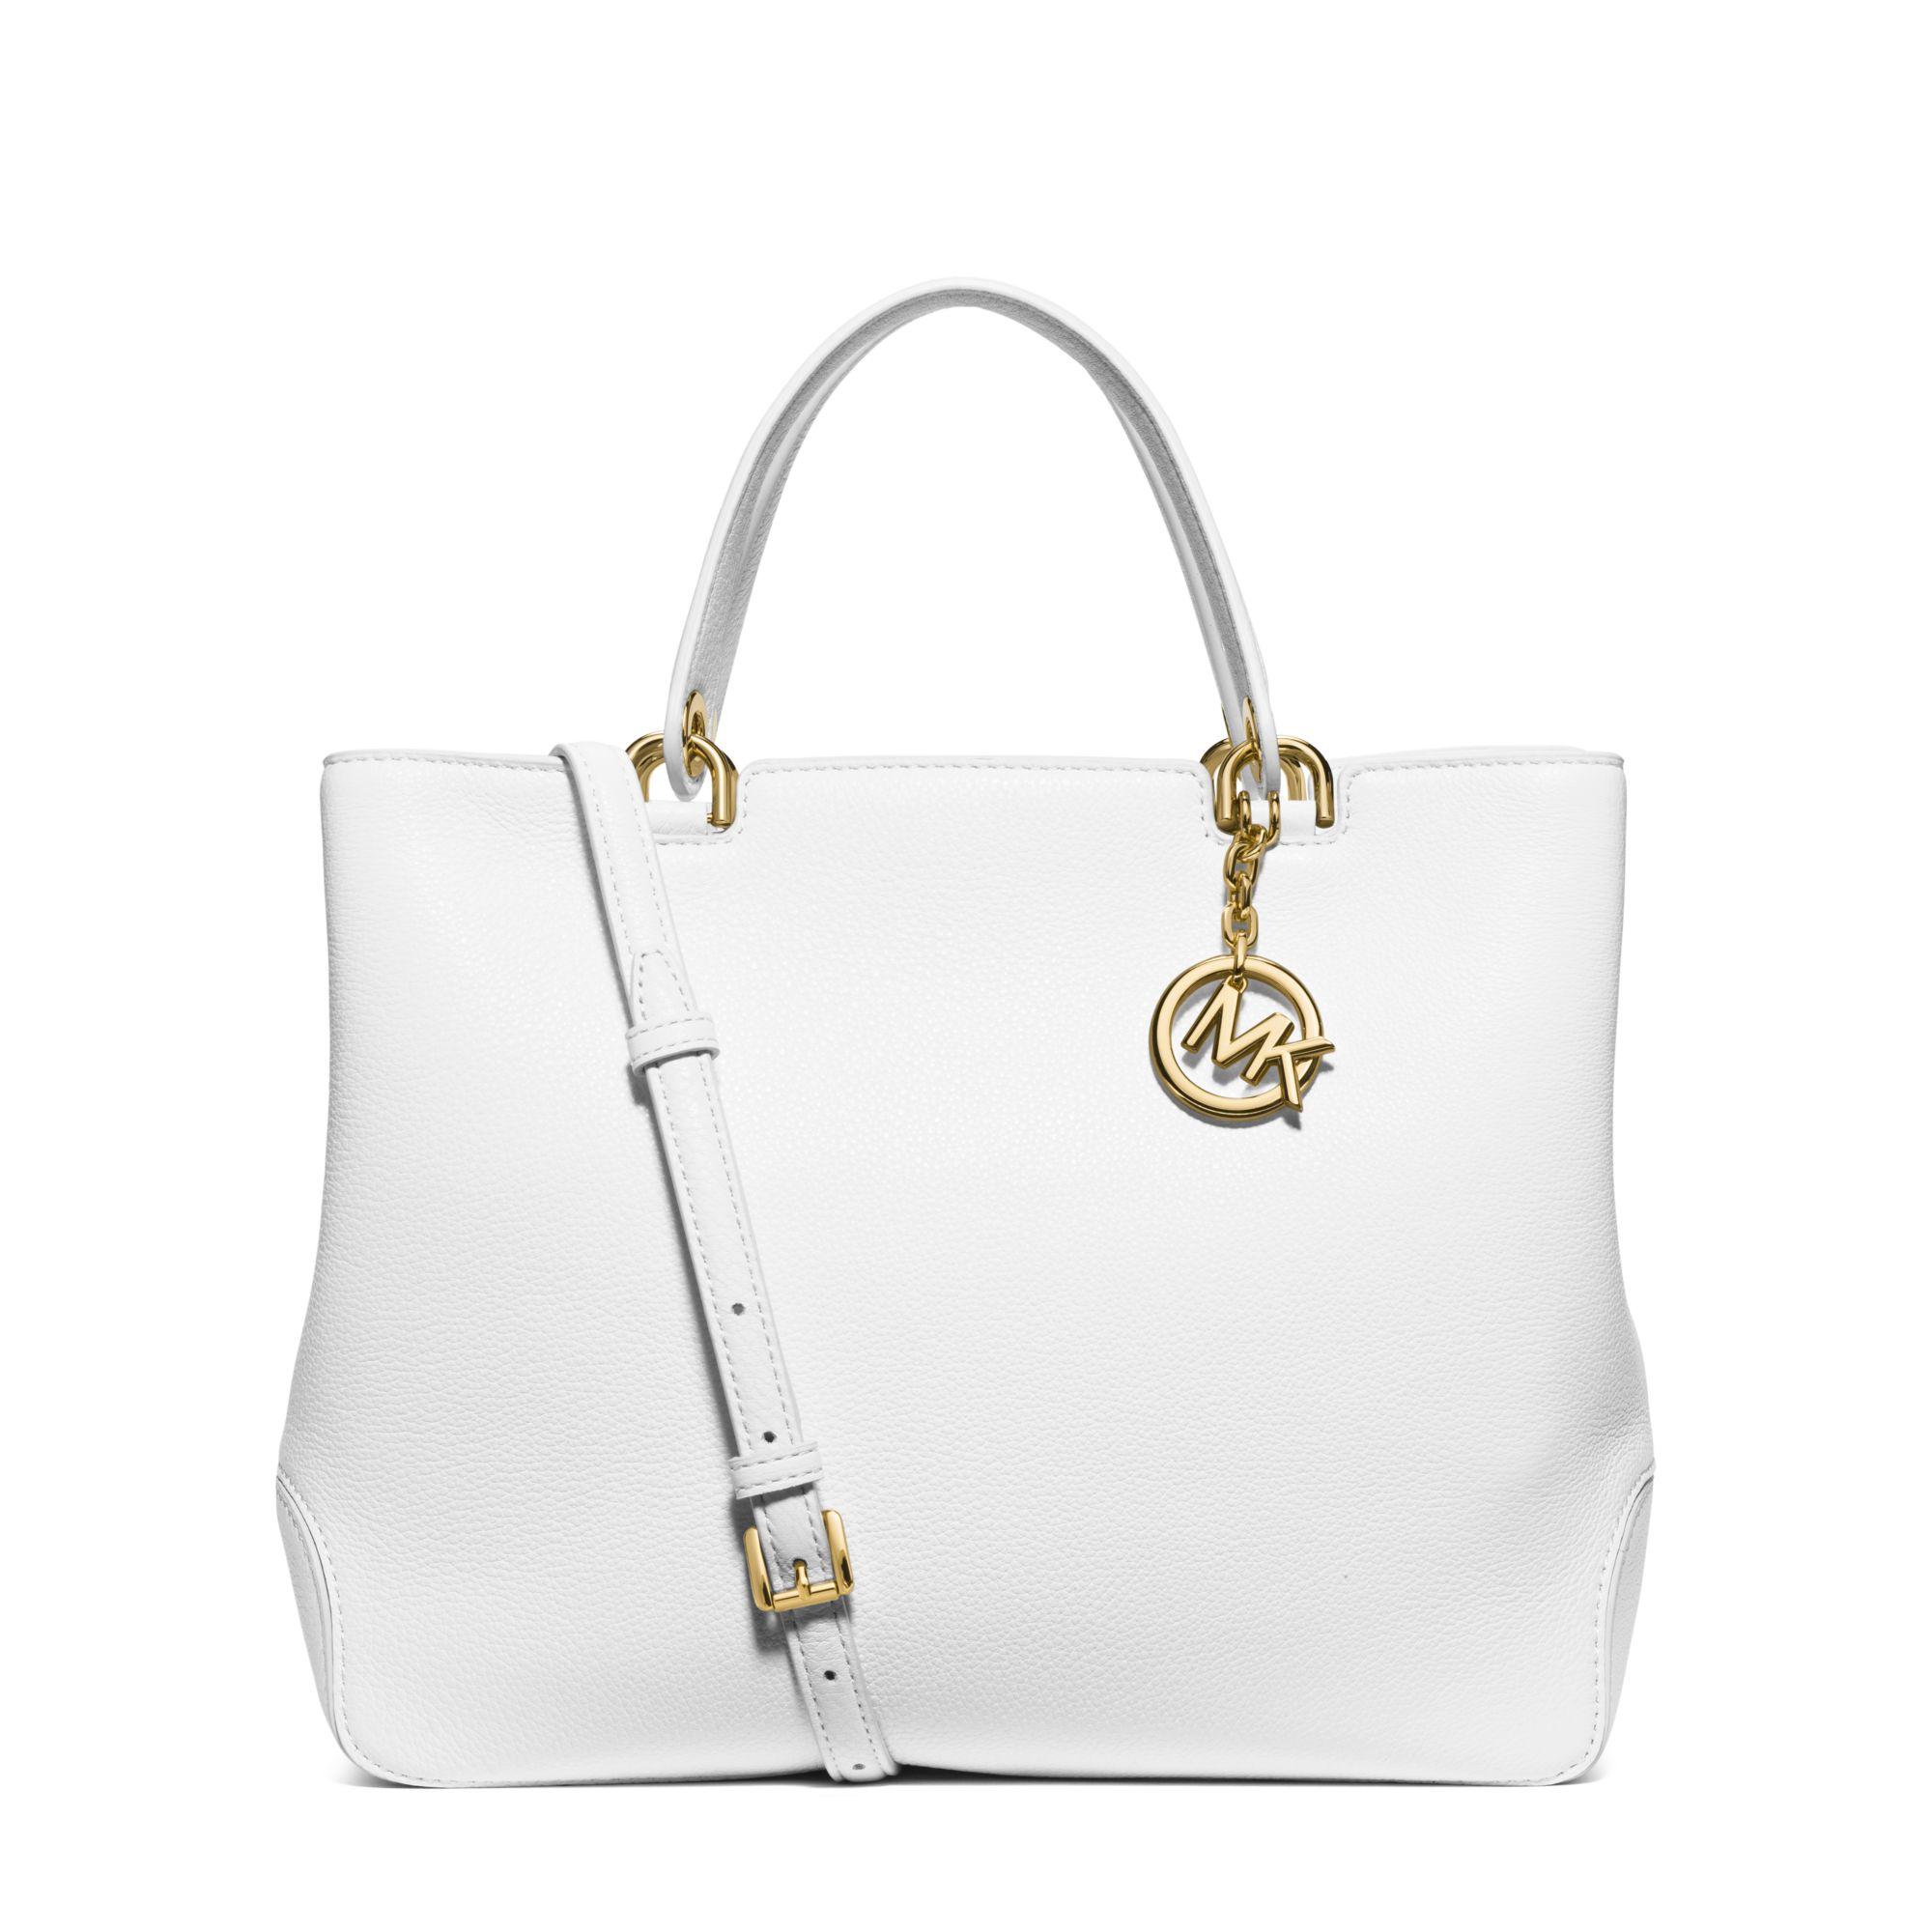 18b01300fa8c83 Michael Kors Anabelle Large Leather Tote in White - Lyst